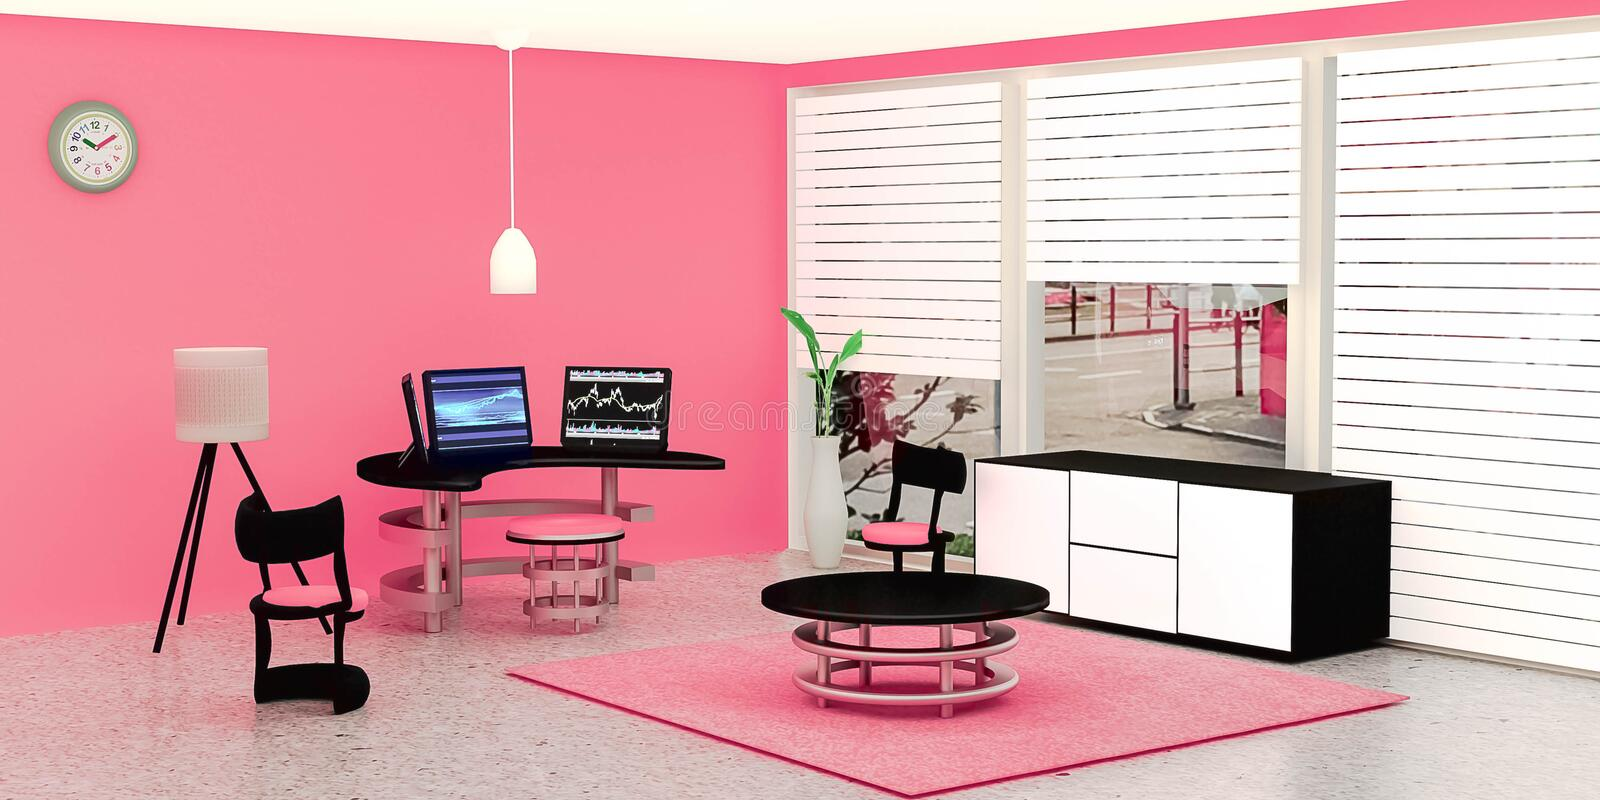 Modern working room interior, 3 black desktop computer put on a glass table in front of pink wall. A lamp and flower pot place on marble floor, Pink color tone vector illustration